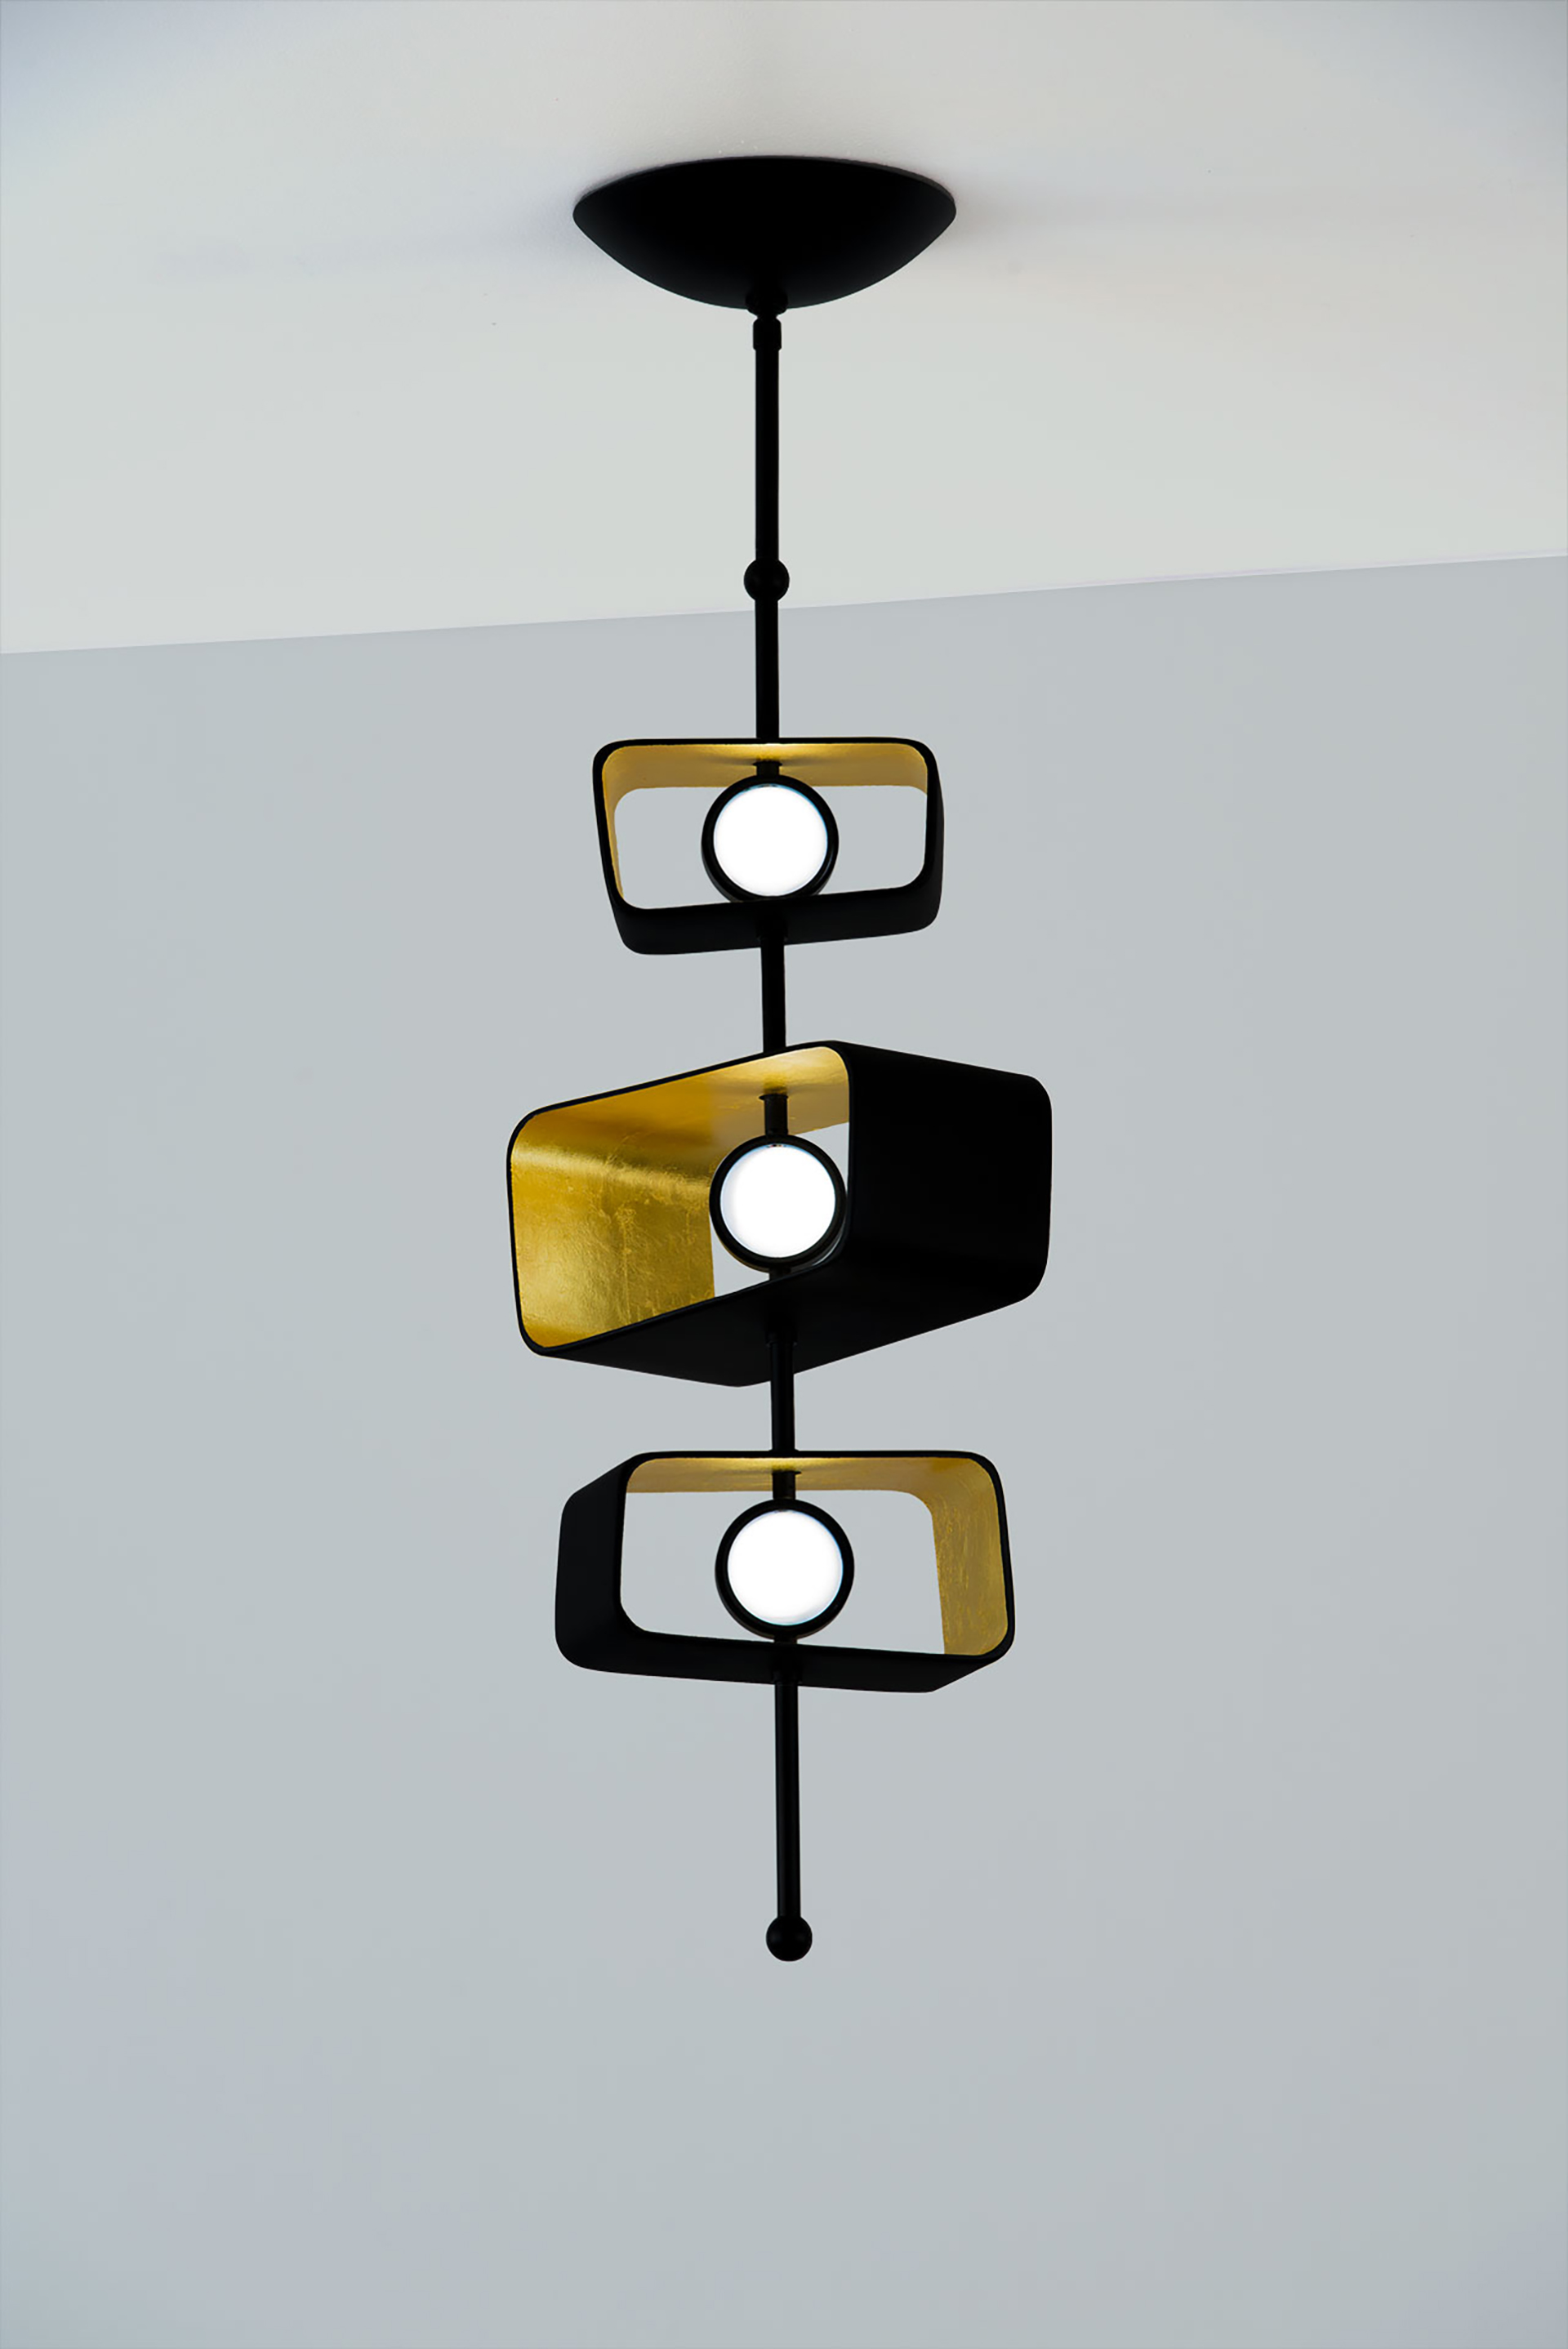 Totem 3 Pendant - Trapezoid fixtureshown in Coal with22k Yellow Gold Leaf inside cast form